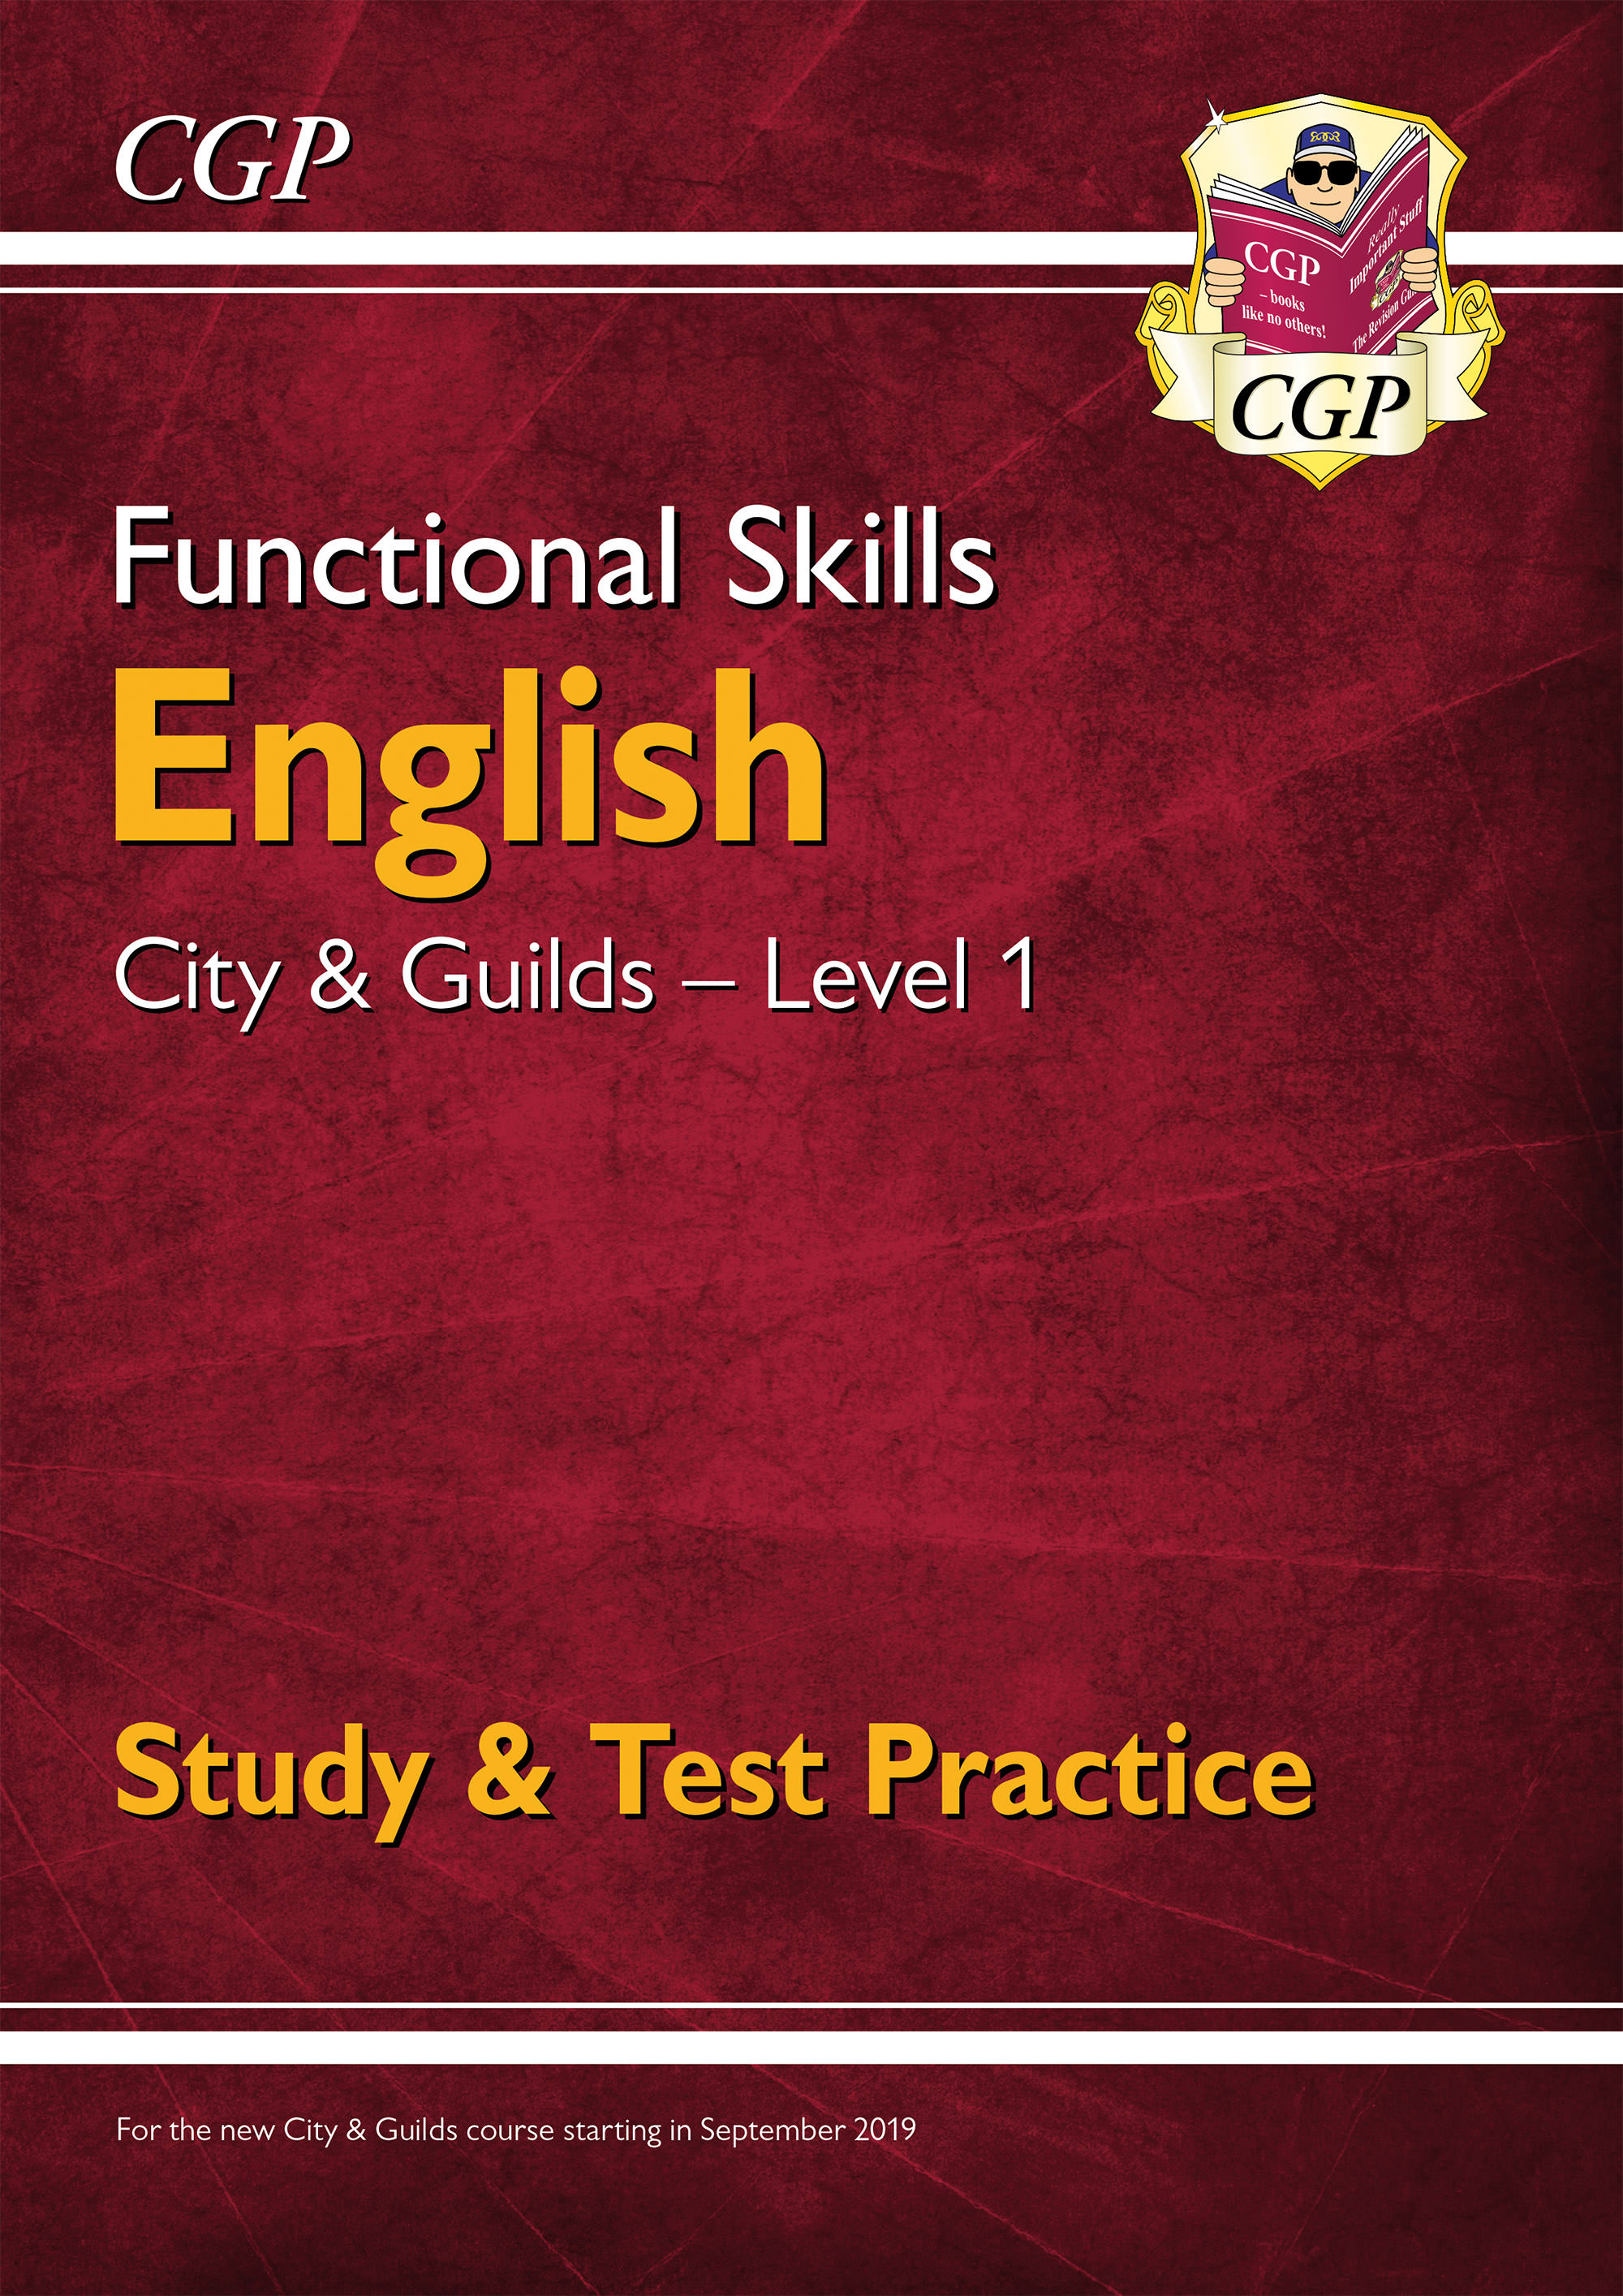 E1CGSRA1DK - New Functional Skills English: City & Guilds Level 1 - Study & Test Practice (for 2020